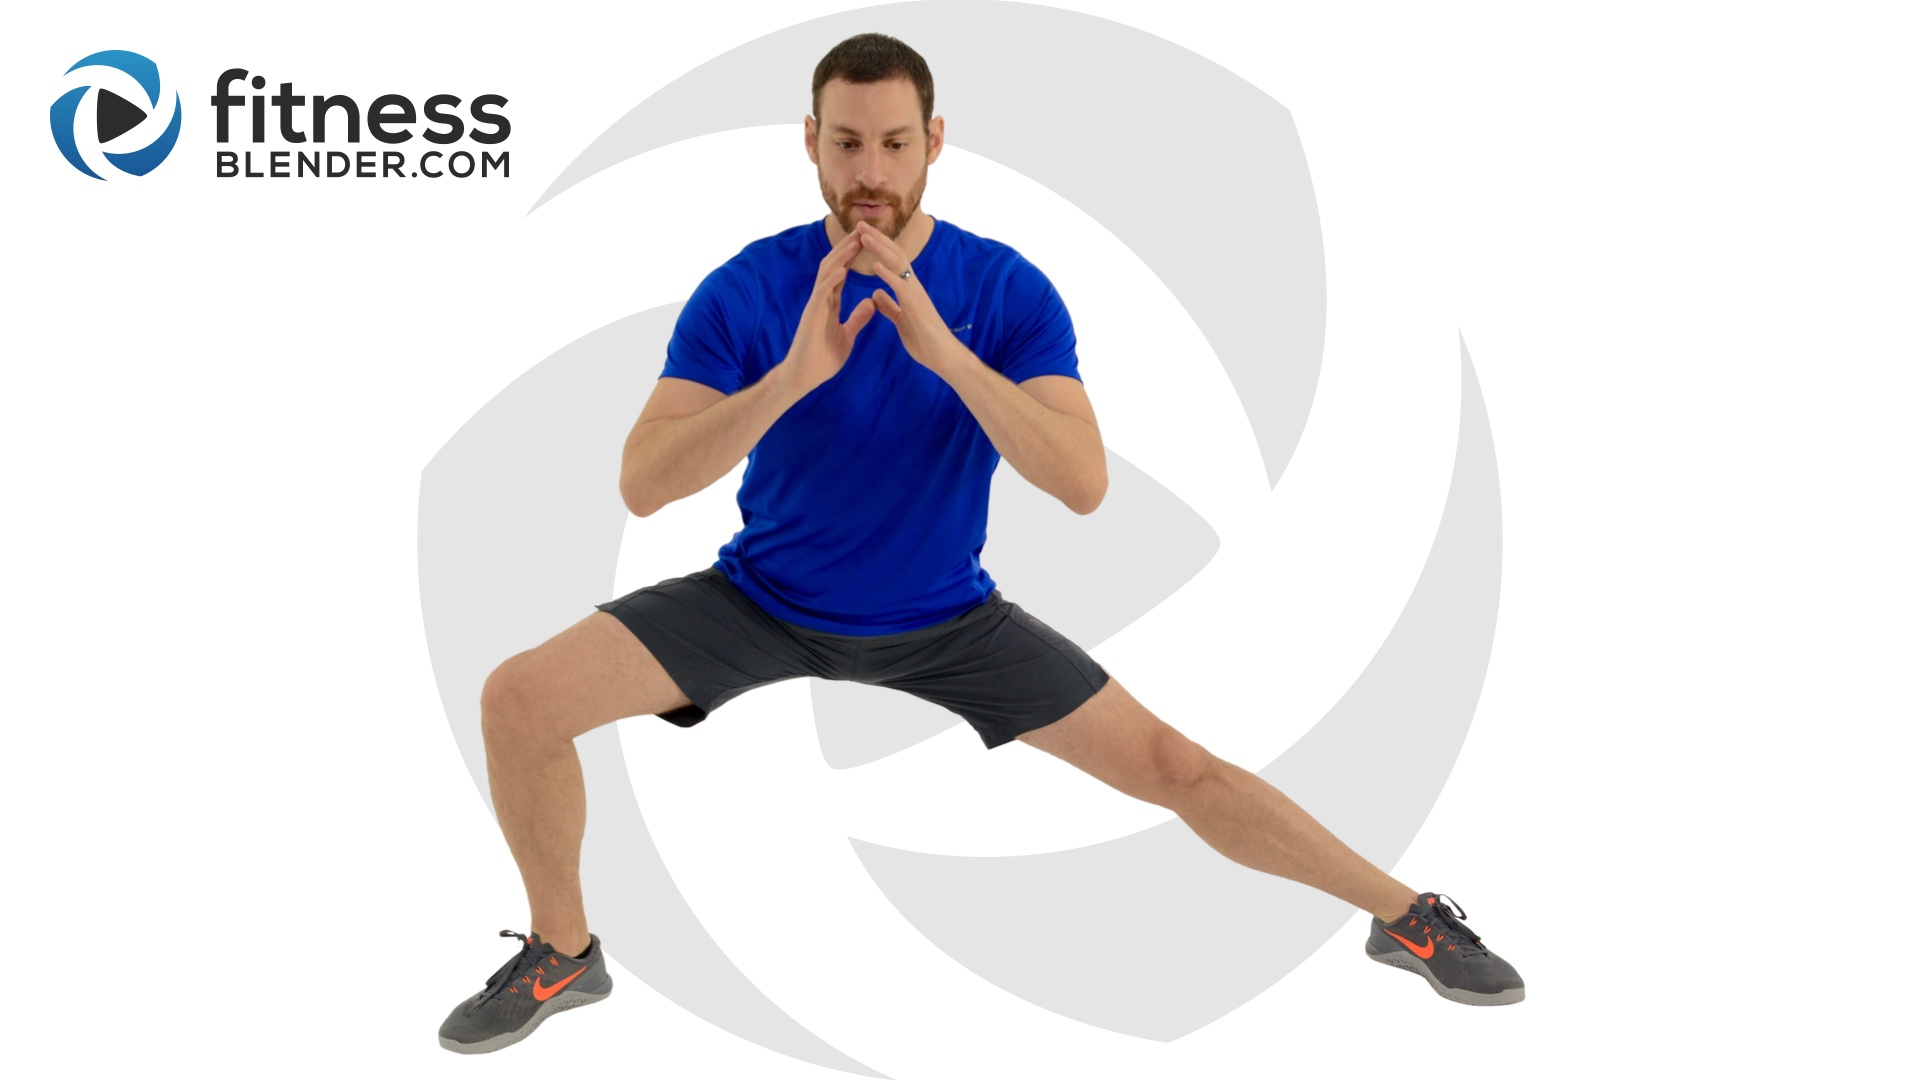 lower body strength and endurance challenge beginner or advanced